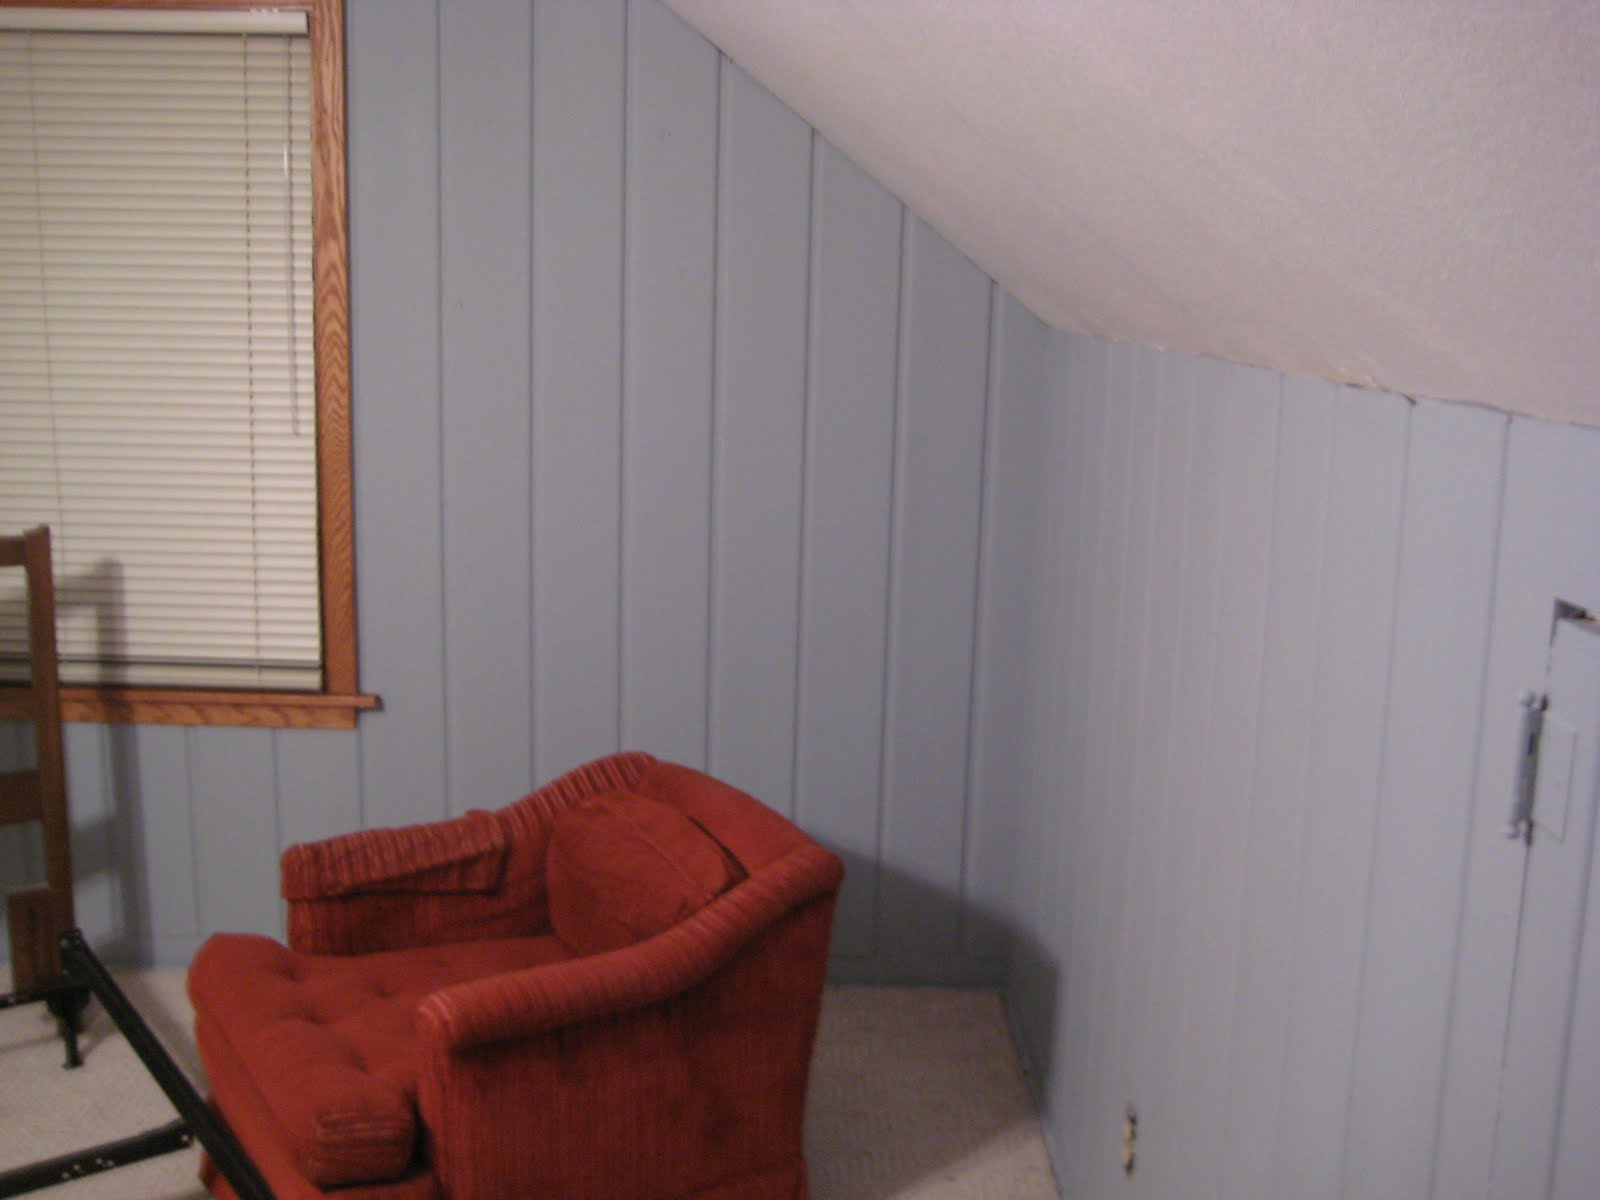 Painting A Bedroom Remodelaholic Painting Over Knotty Pine Paneling Complete